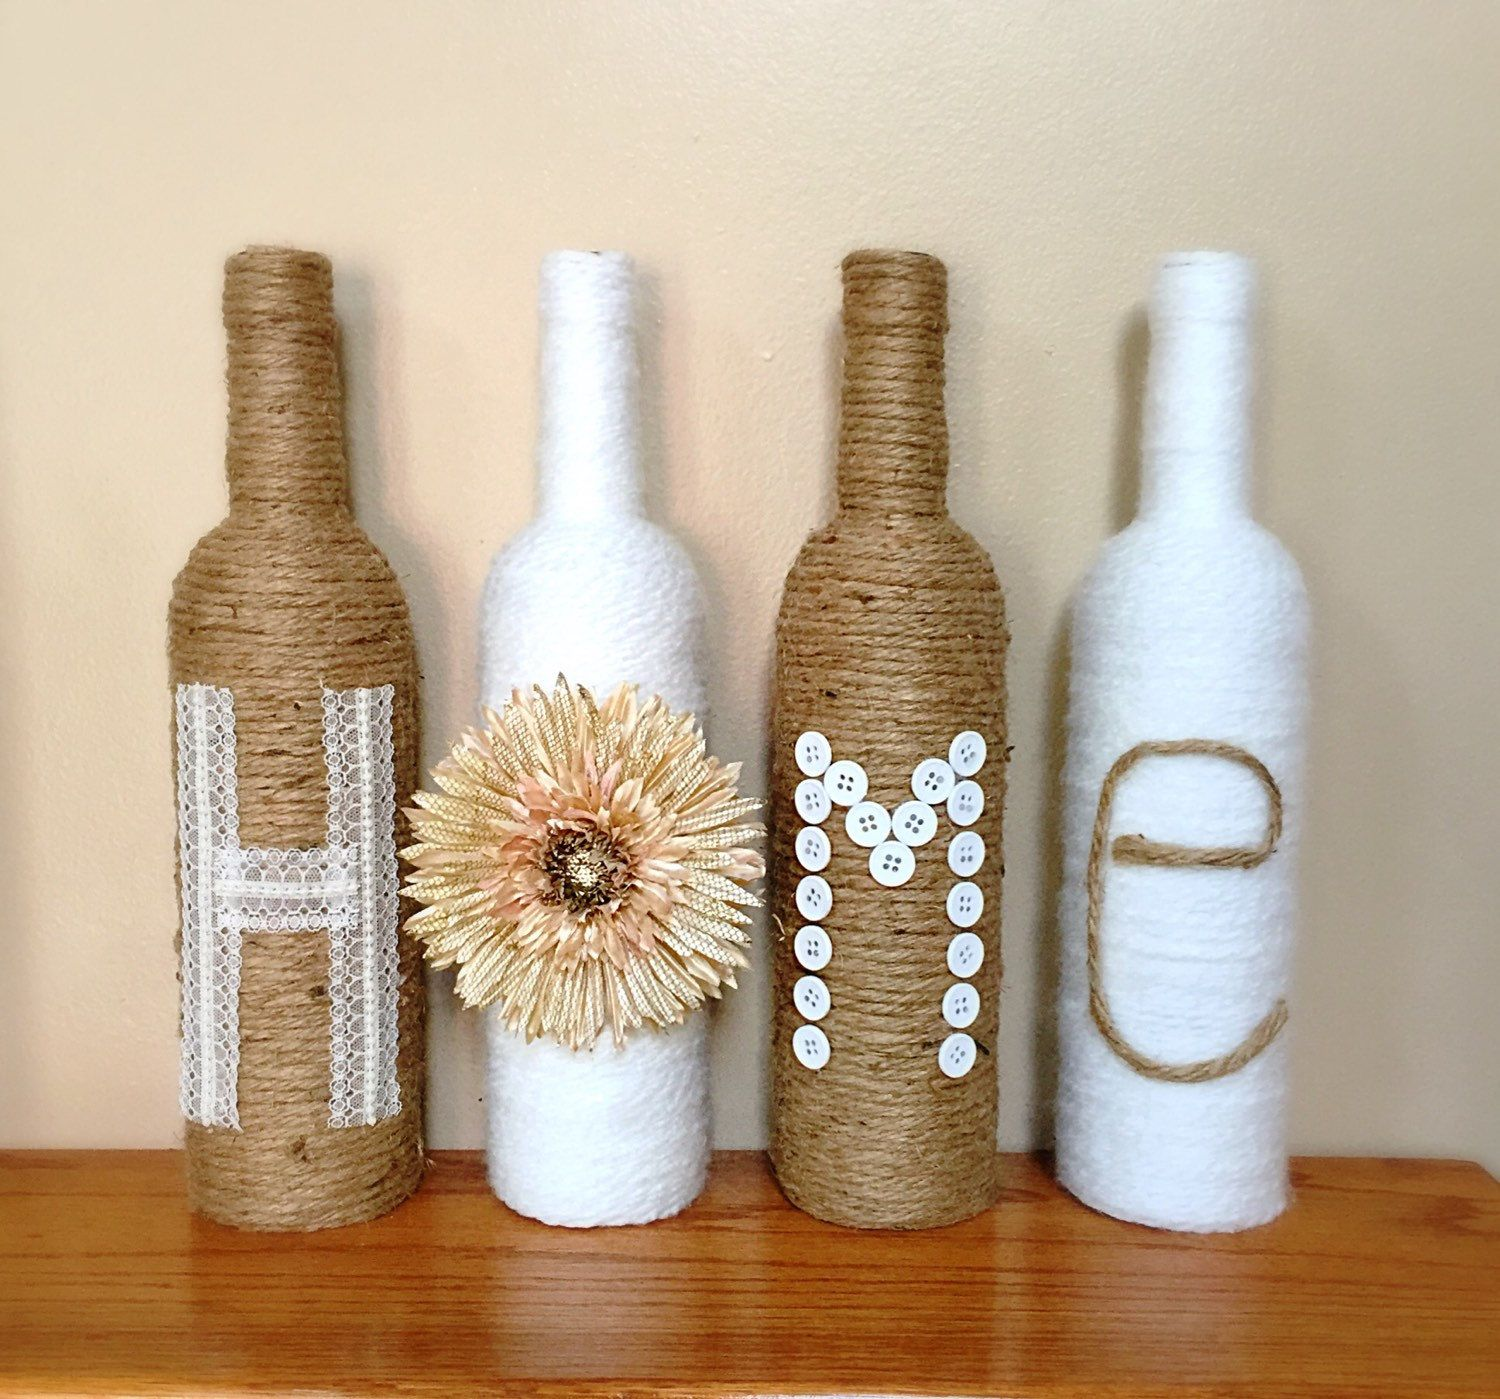 Twine Wrapped Wine Bottles Rustic Home Decor by BienzCraftBoutique